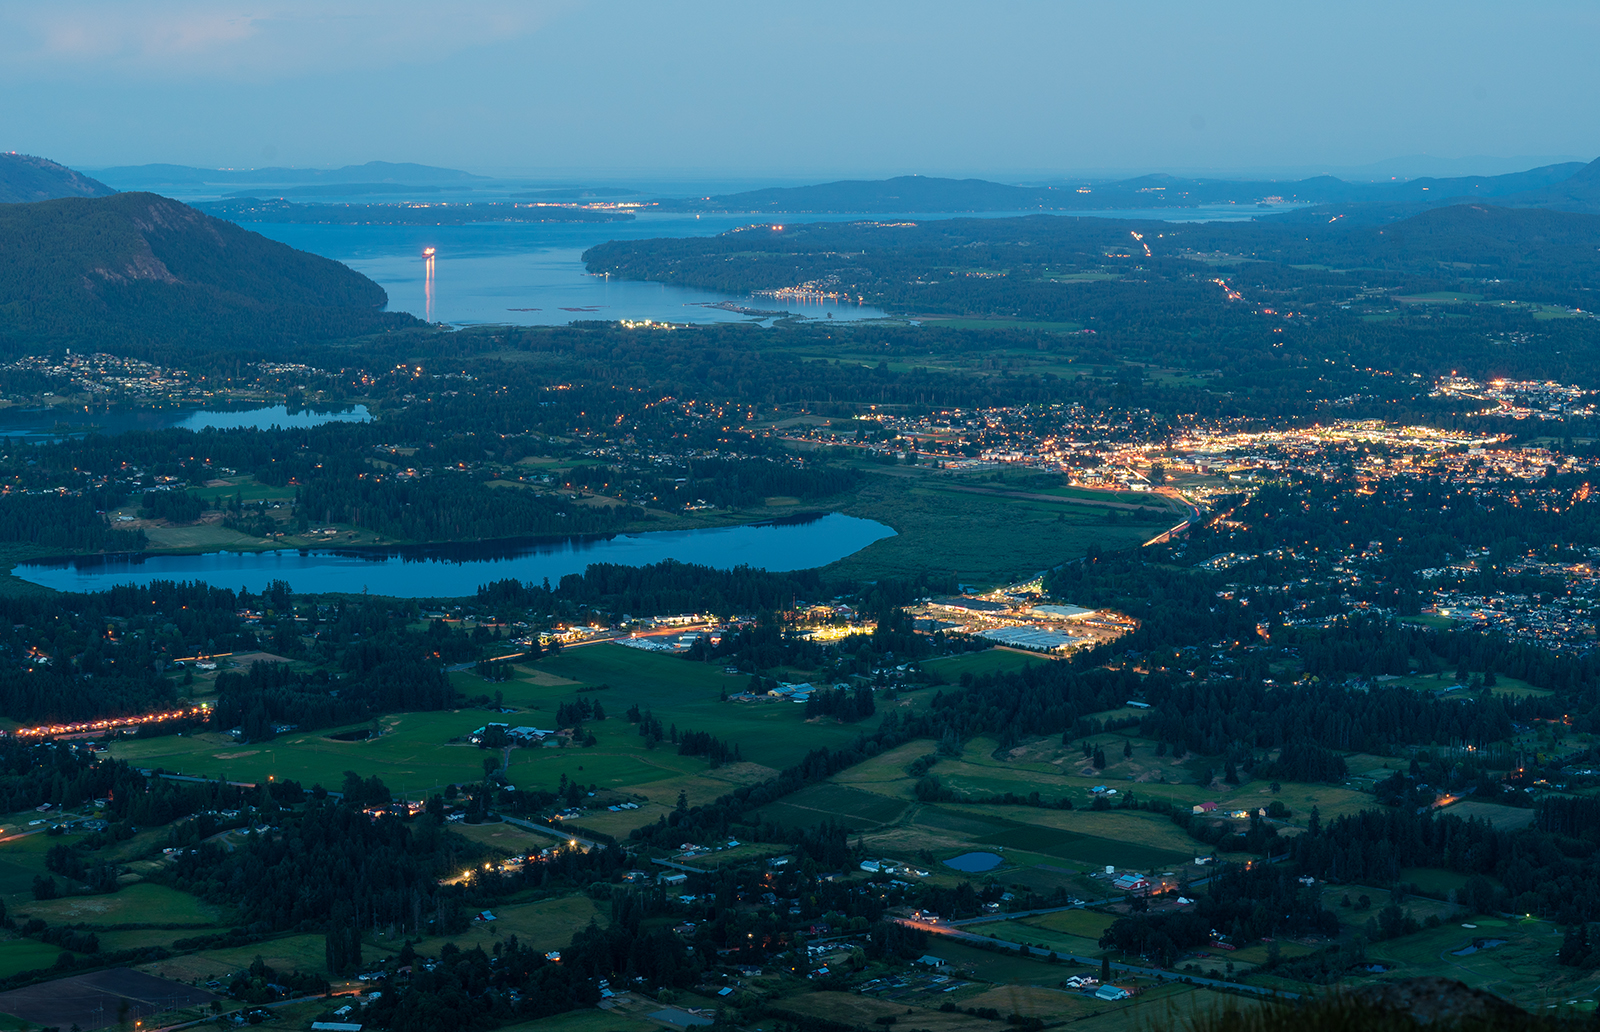 The Cowichan Valley at dusk